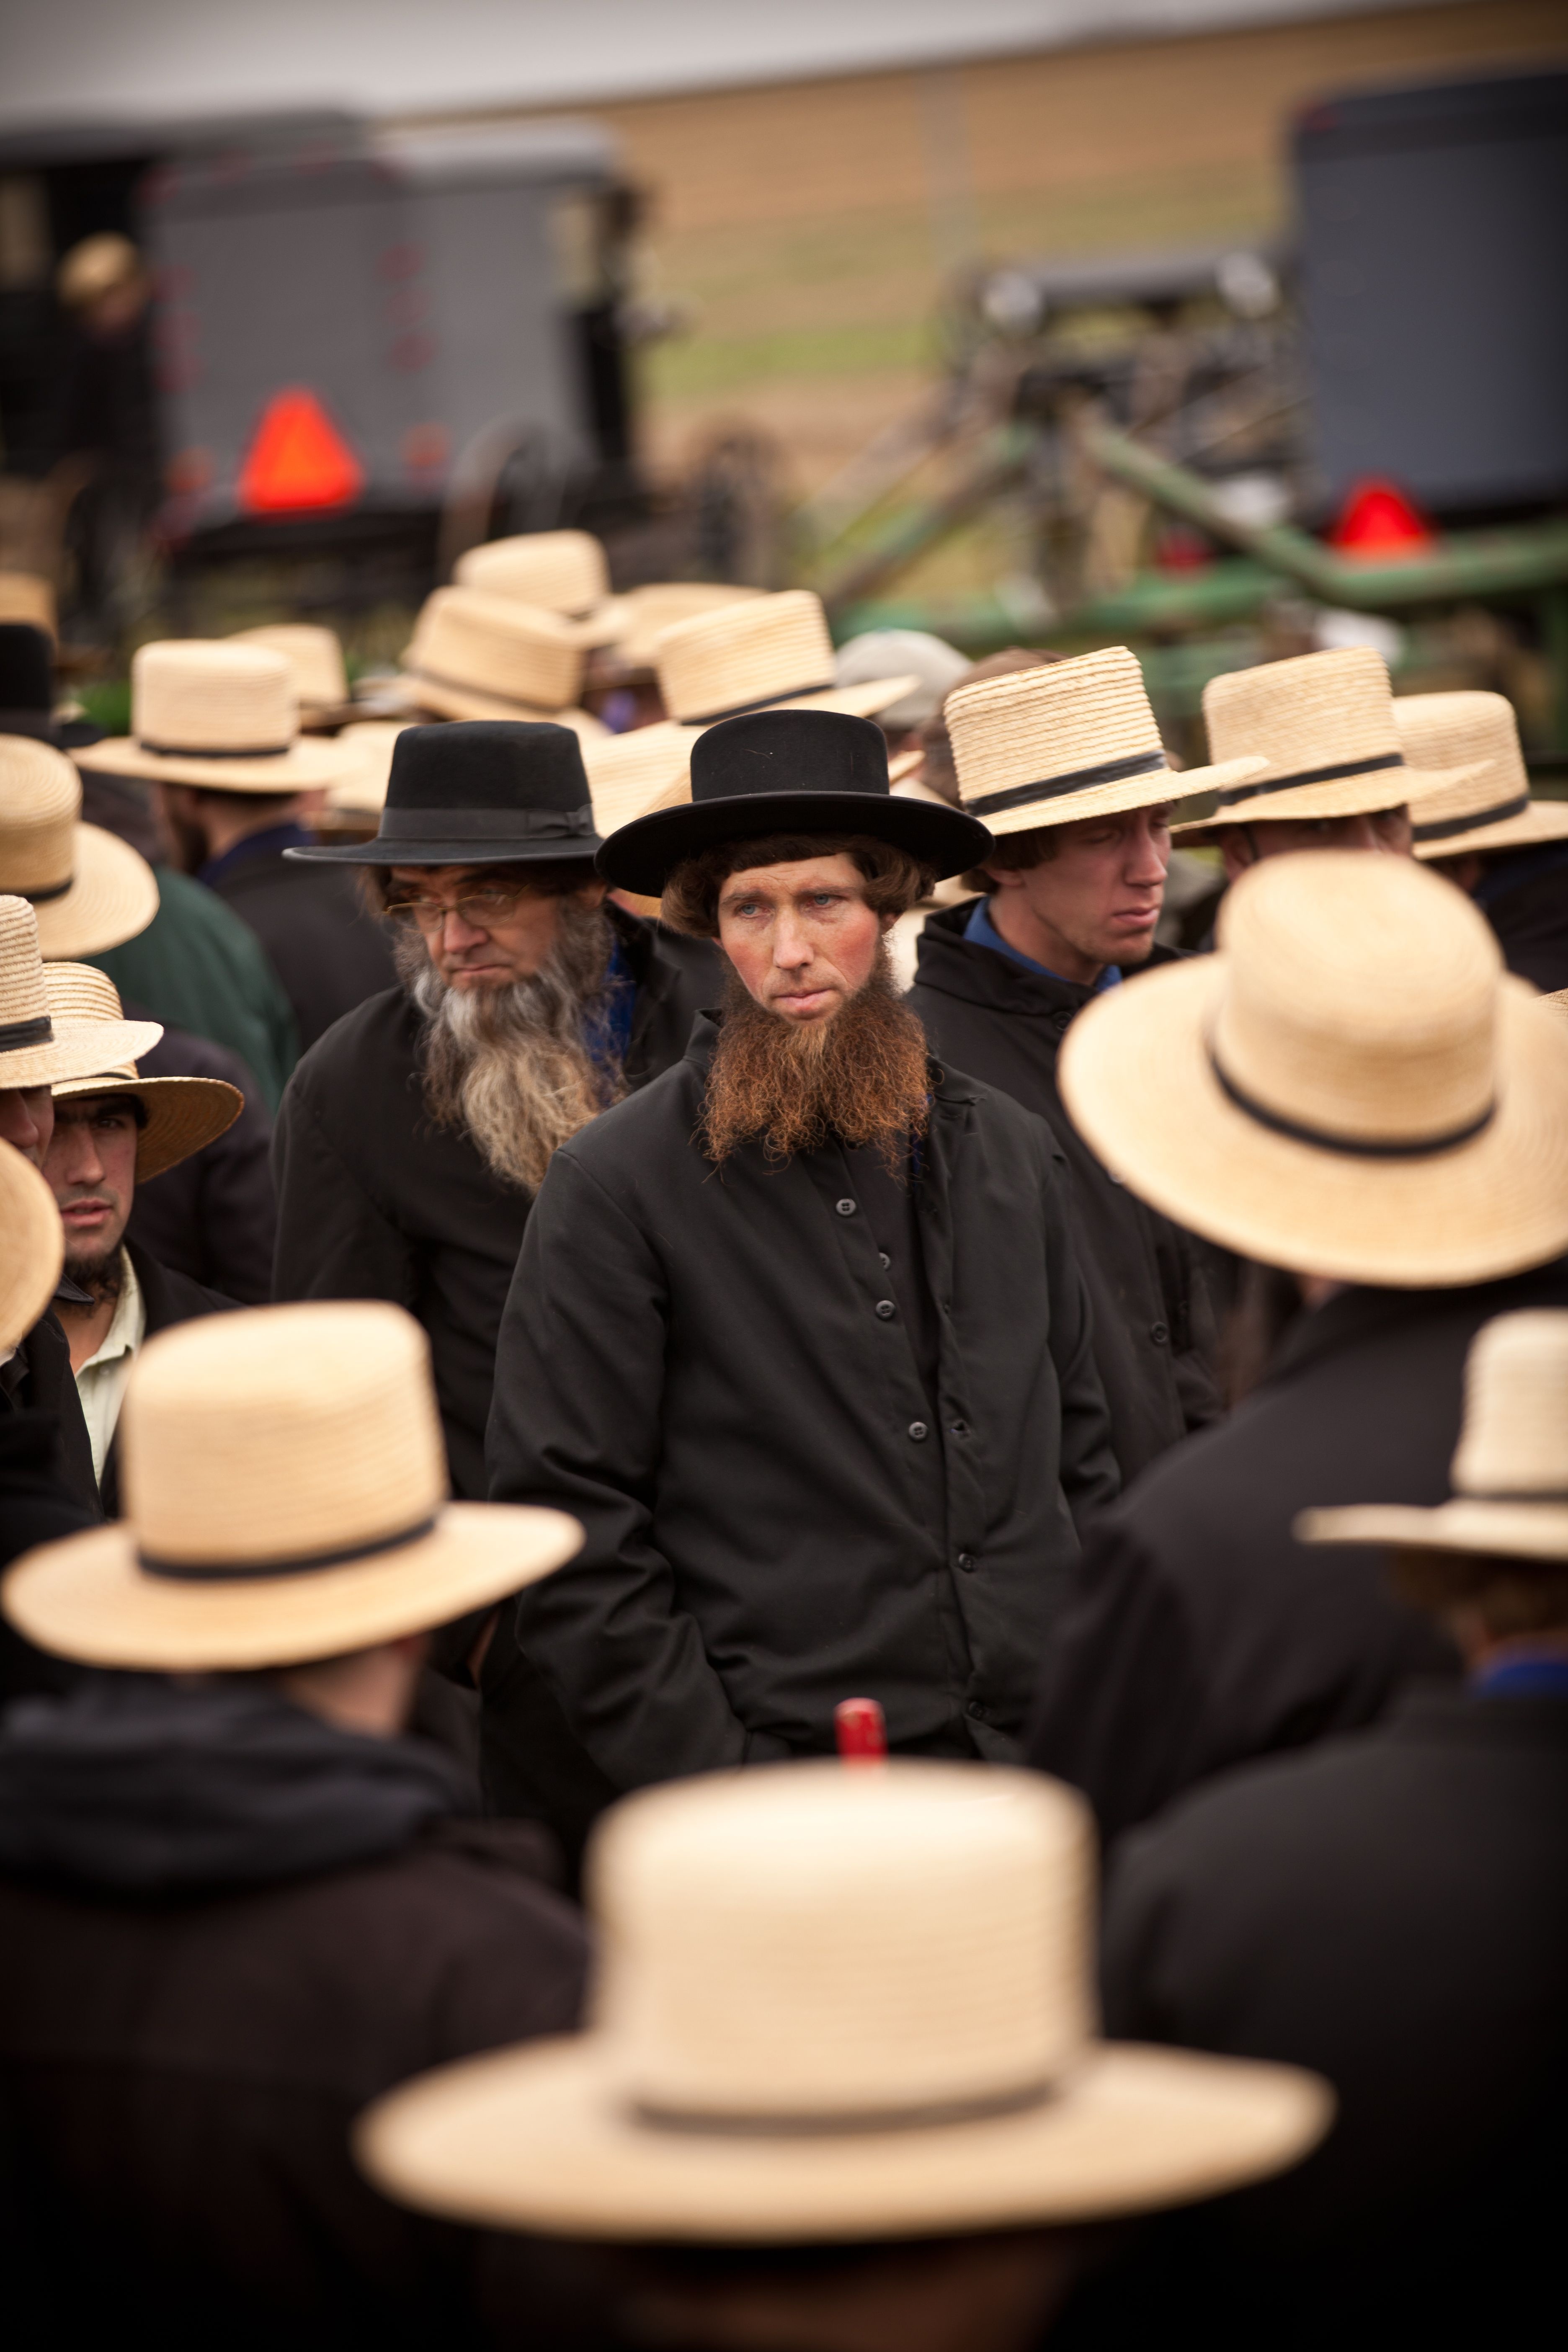 Amish Bishop Describes Beard Cutting Attack Sojourners